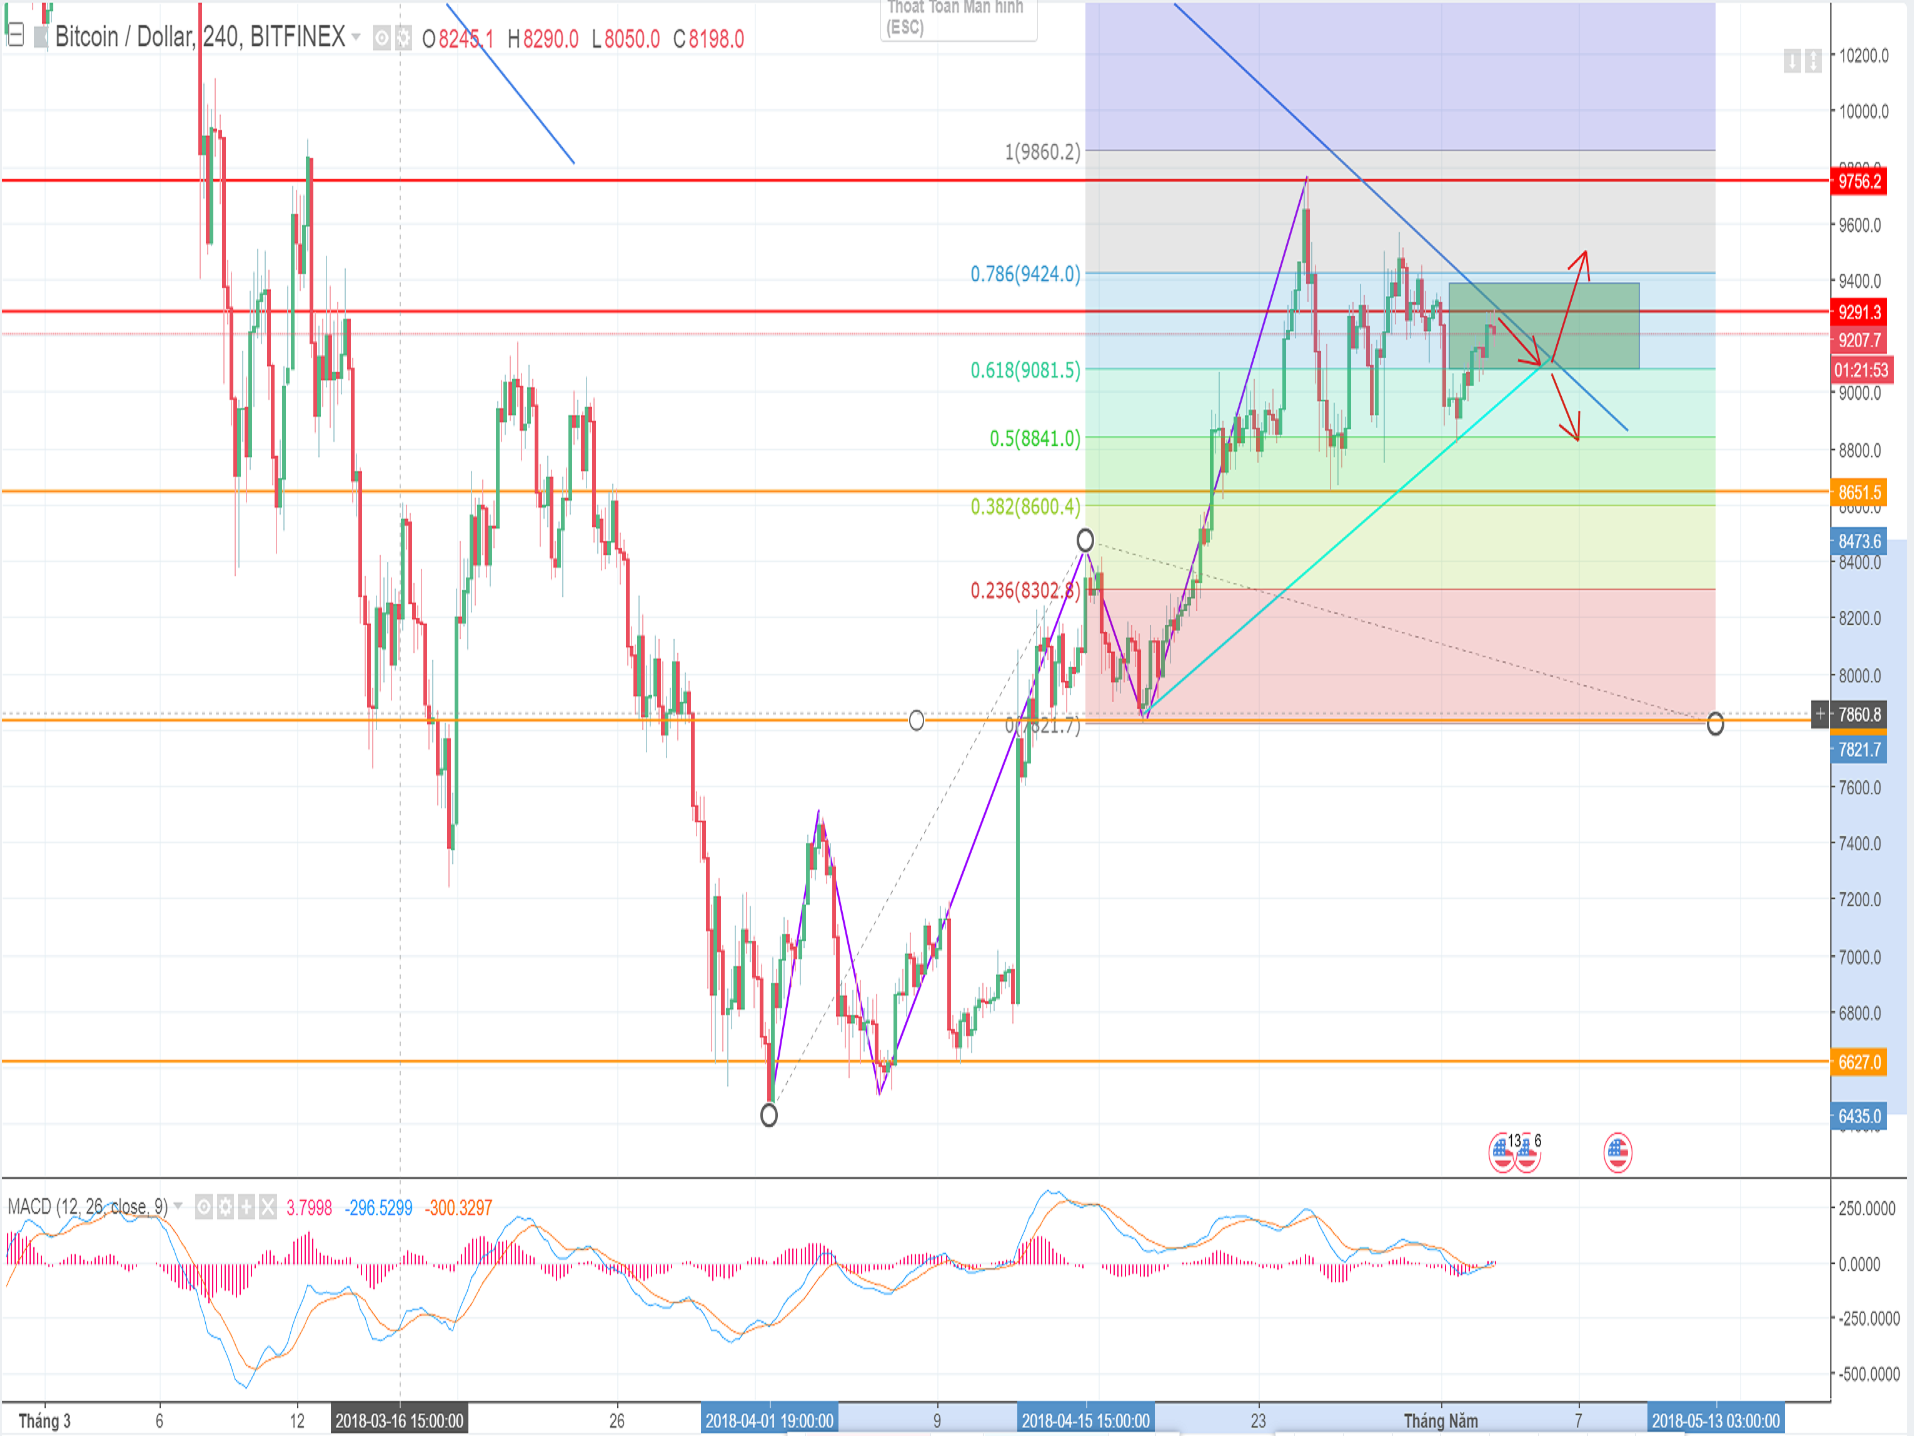 Bitcoin price will fall to the level of $9082 in intraday trading